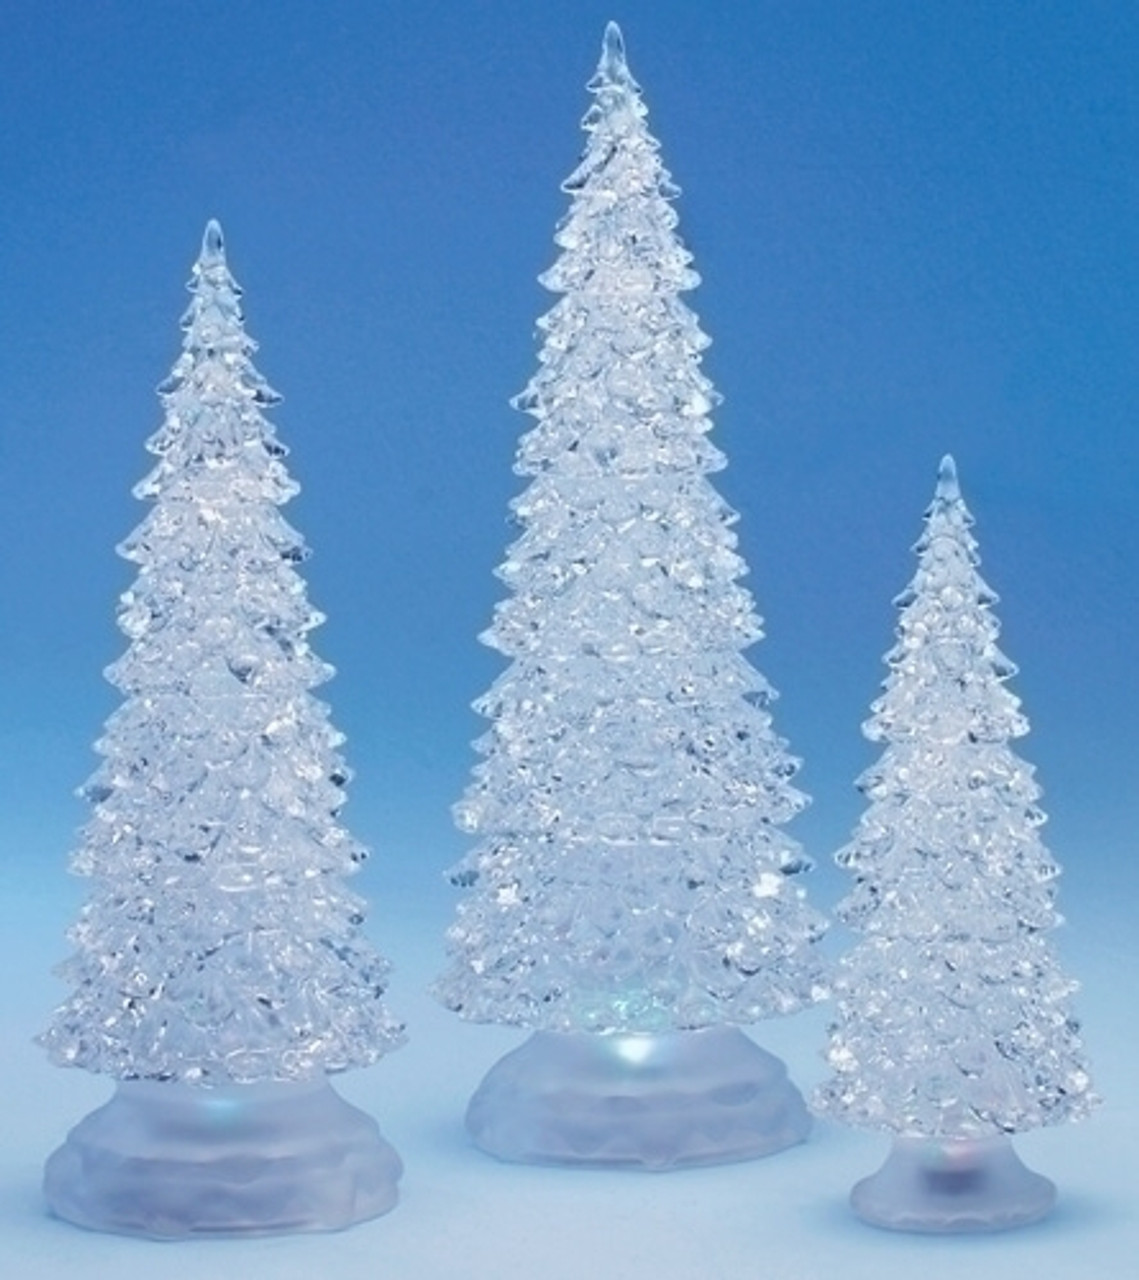 3 piece icy crystal color changing christmas trees led lights 9728289 - Color Changing Christmas Tree Lights